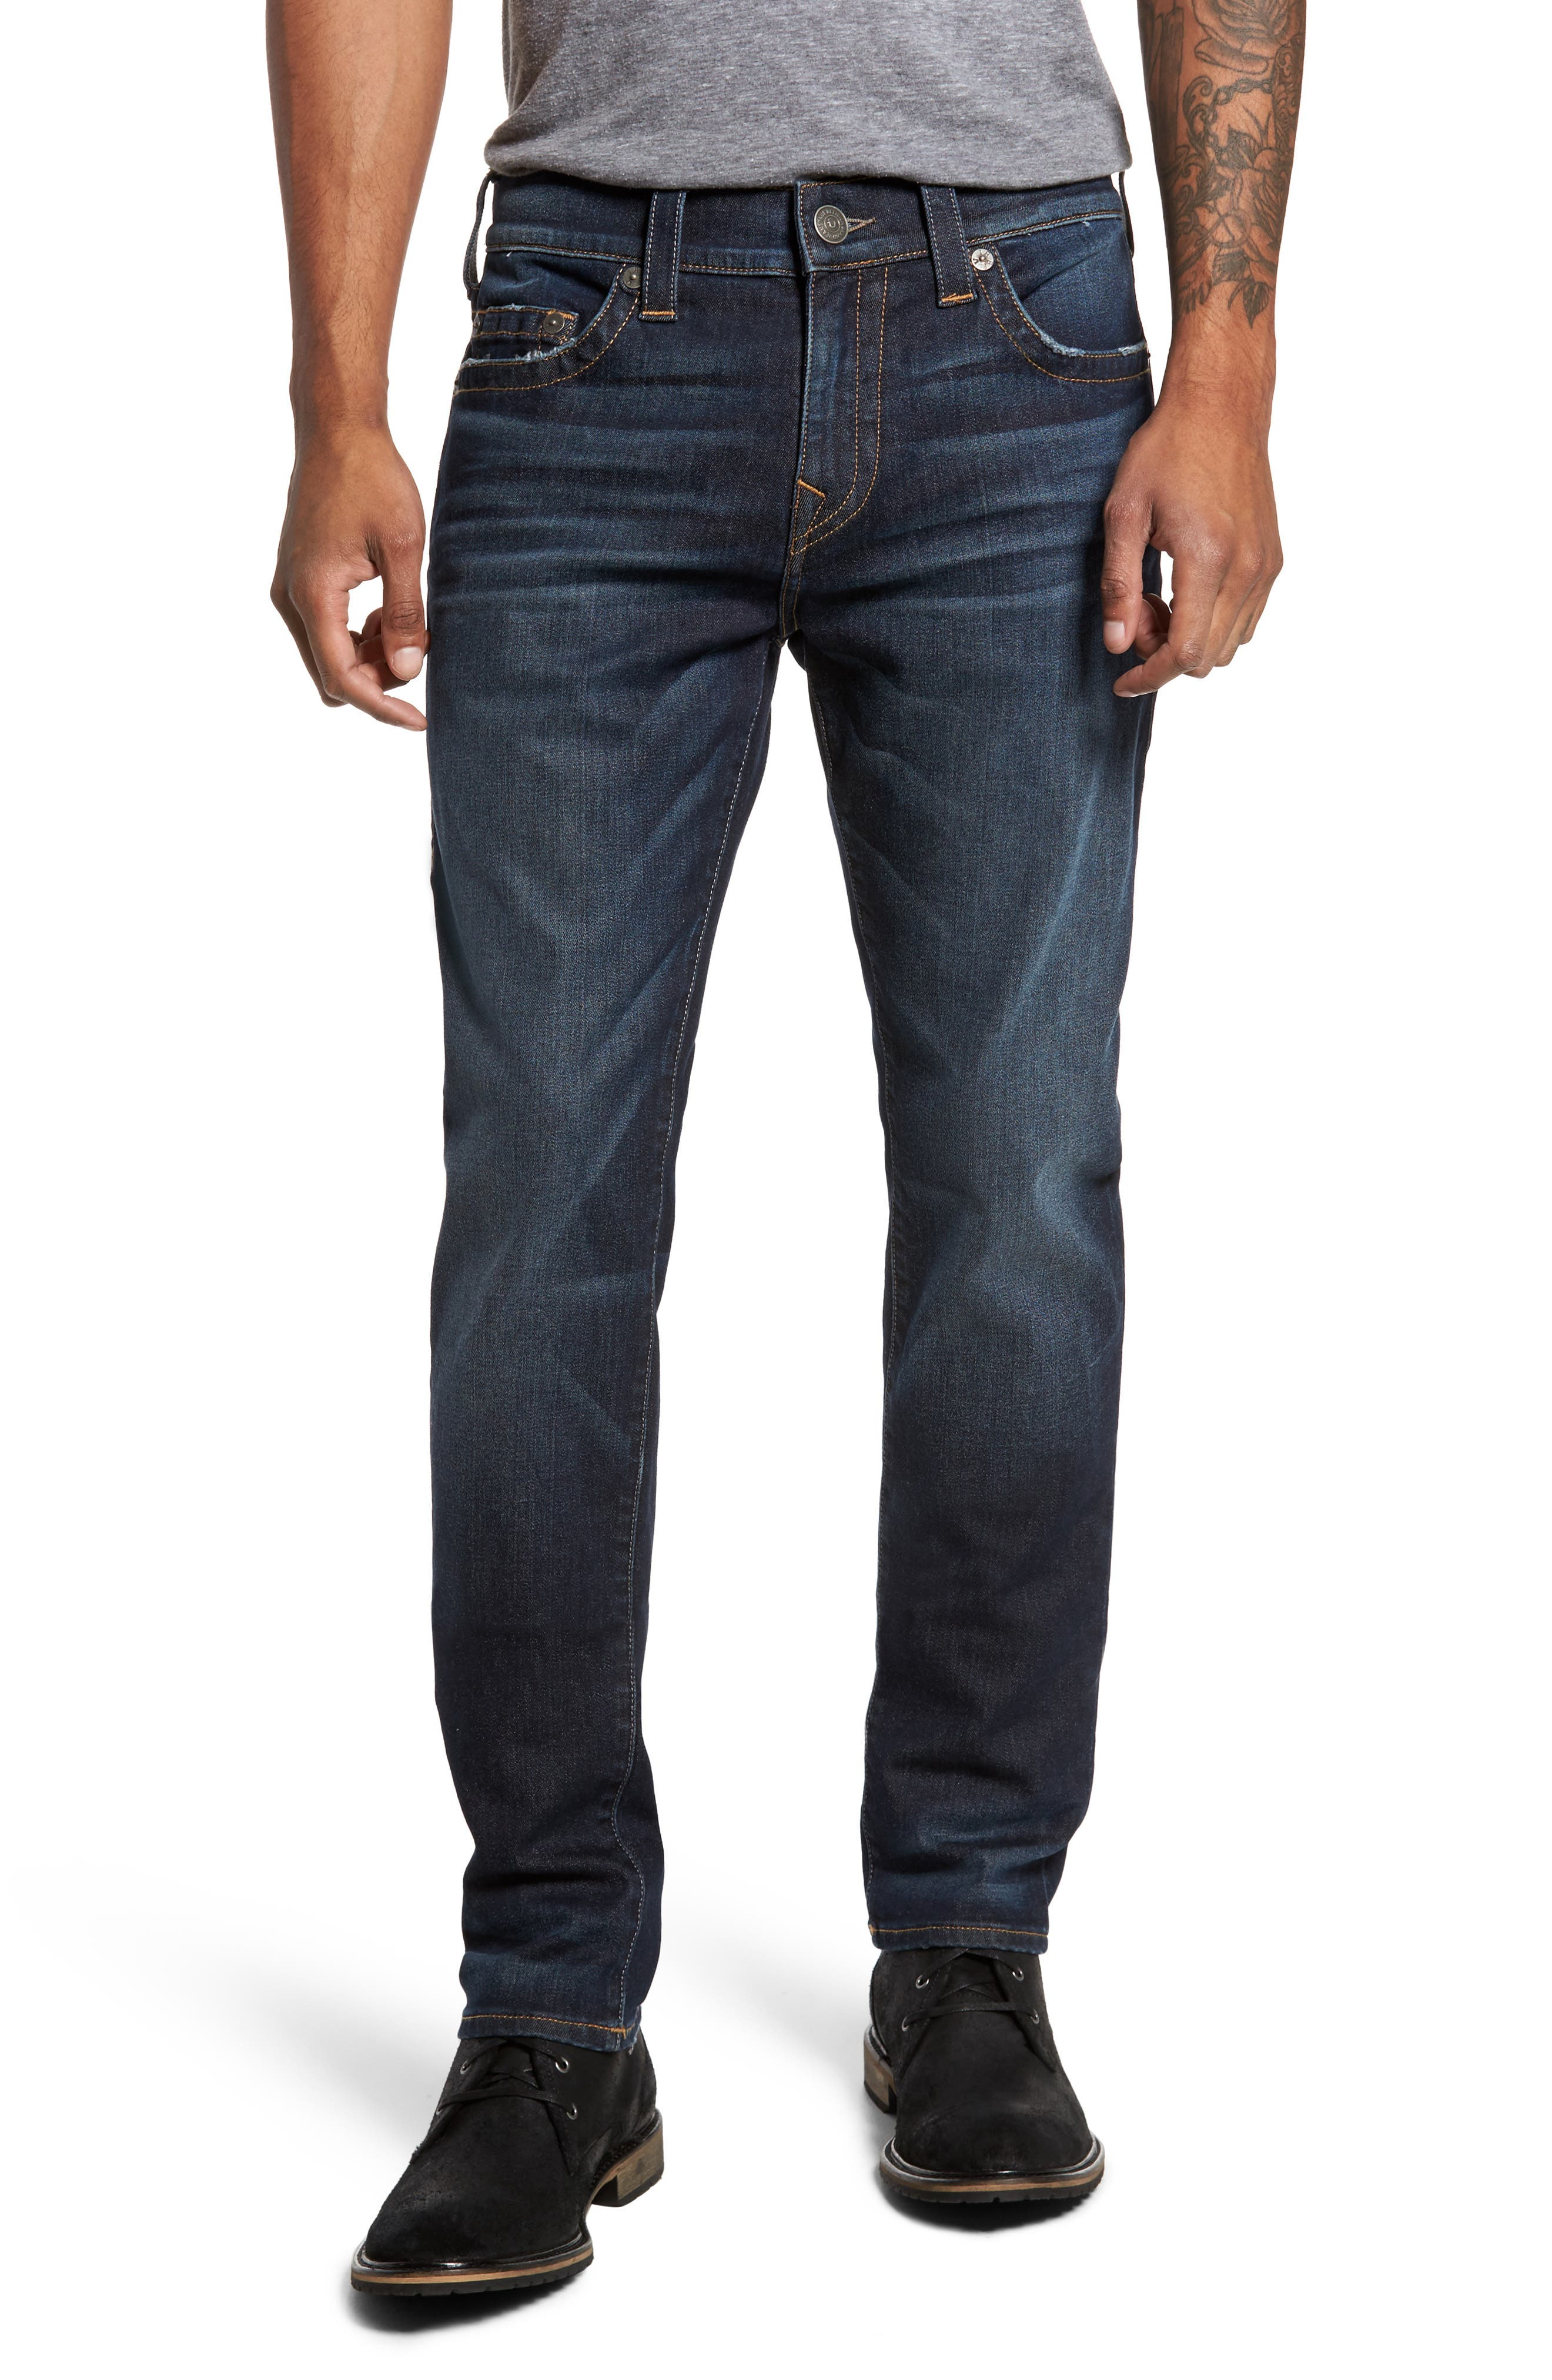 Rocco Skinny Fit Jeans,                             Main thumbnail 1, color,                             403